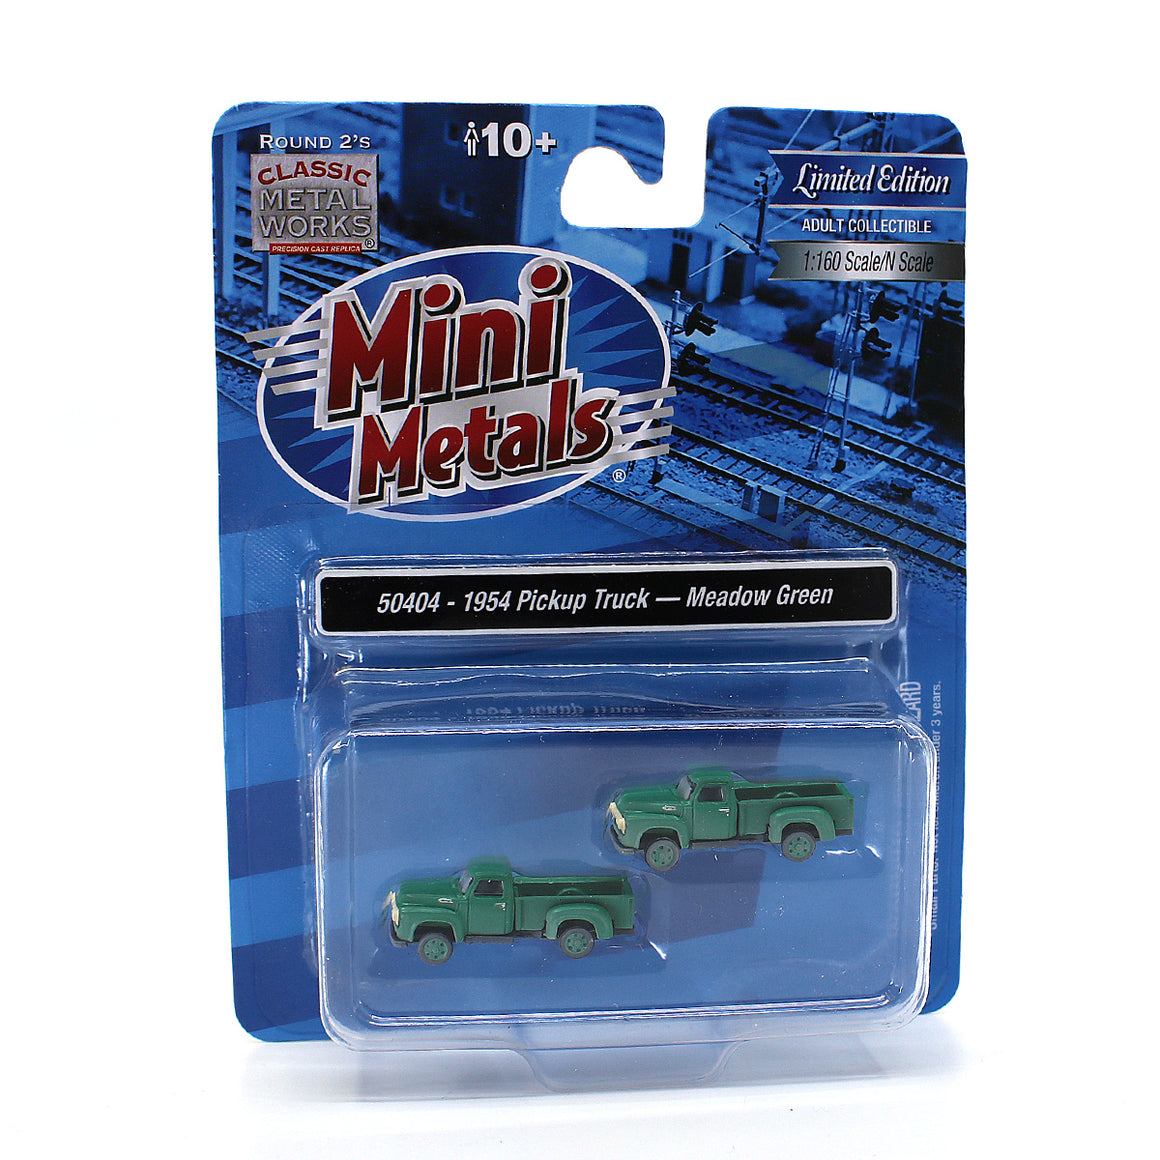 Delivery Trucks Schafer Beer N scale Classic Metal Works 50371 Ford Refrig